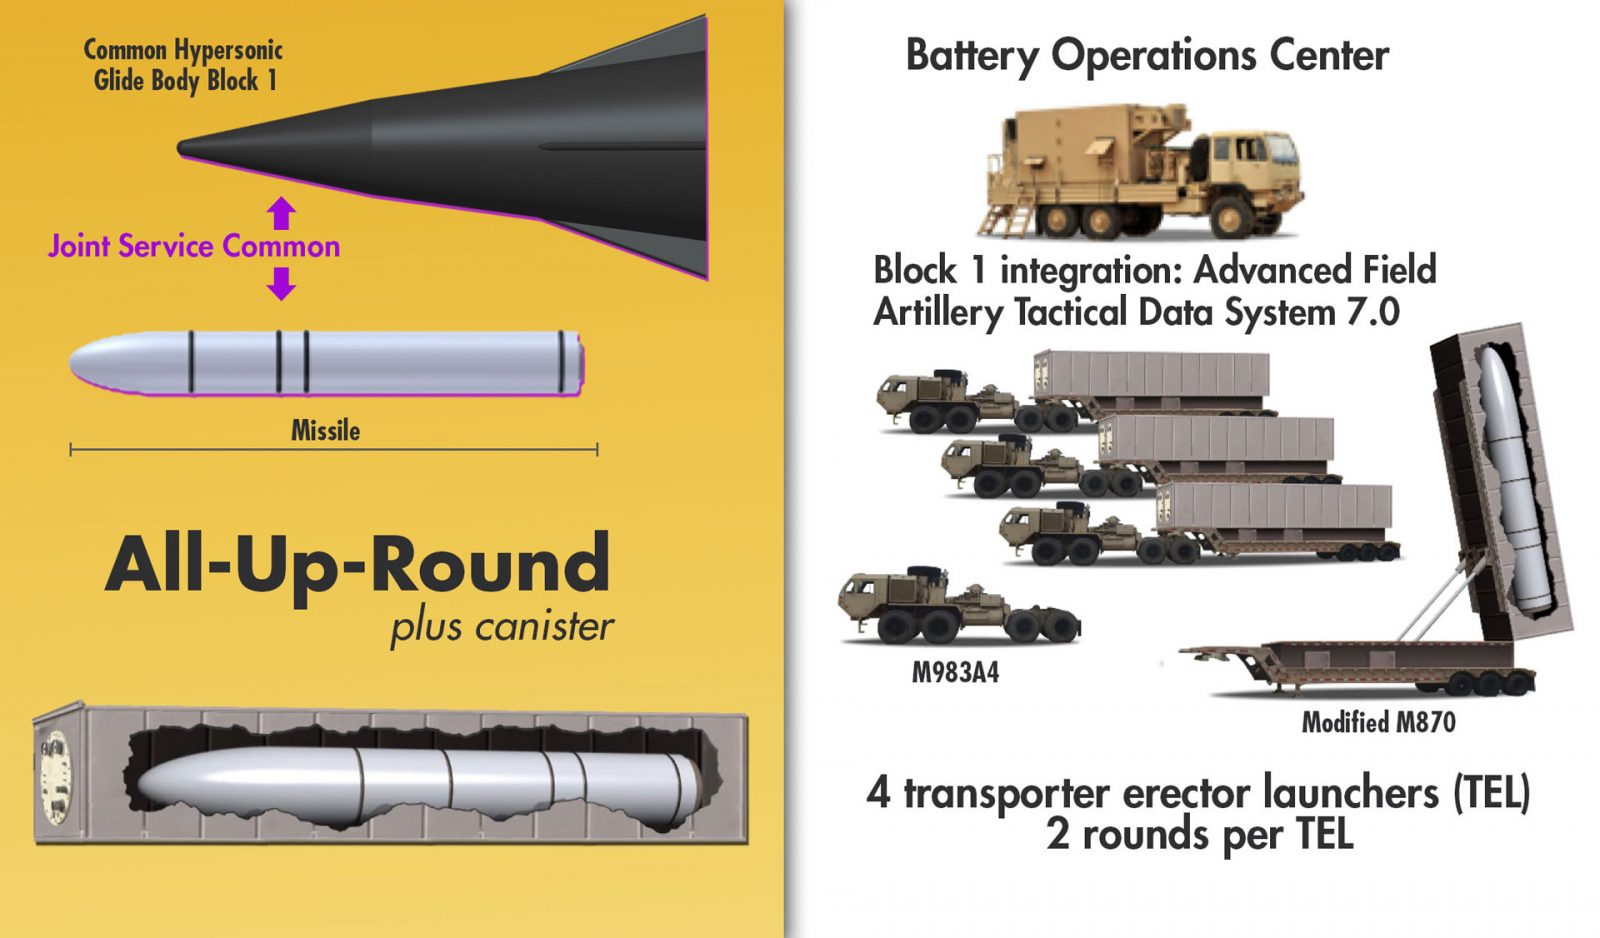 Army to get hyper-sonic weapon armed with Mach 5 hyper-sonic missiles by 2023